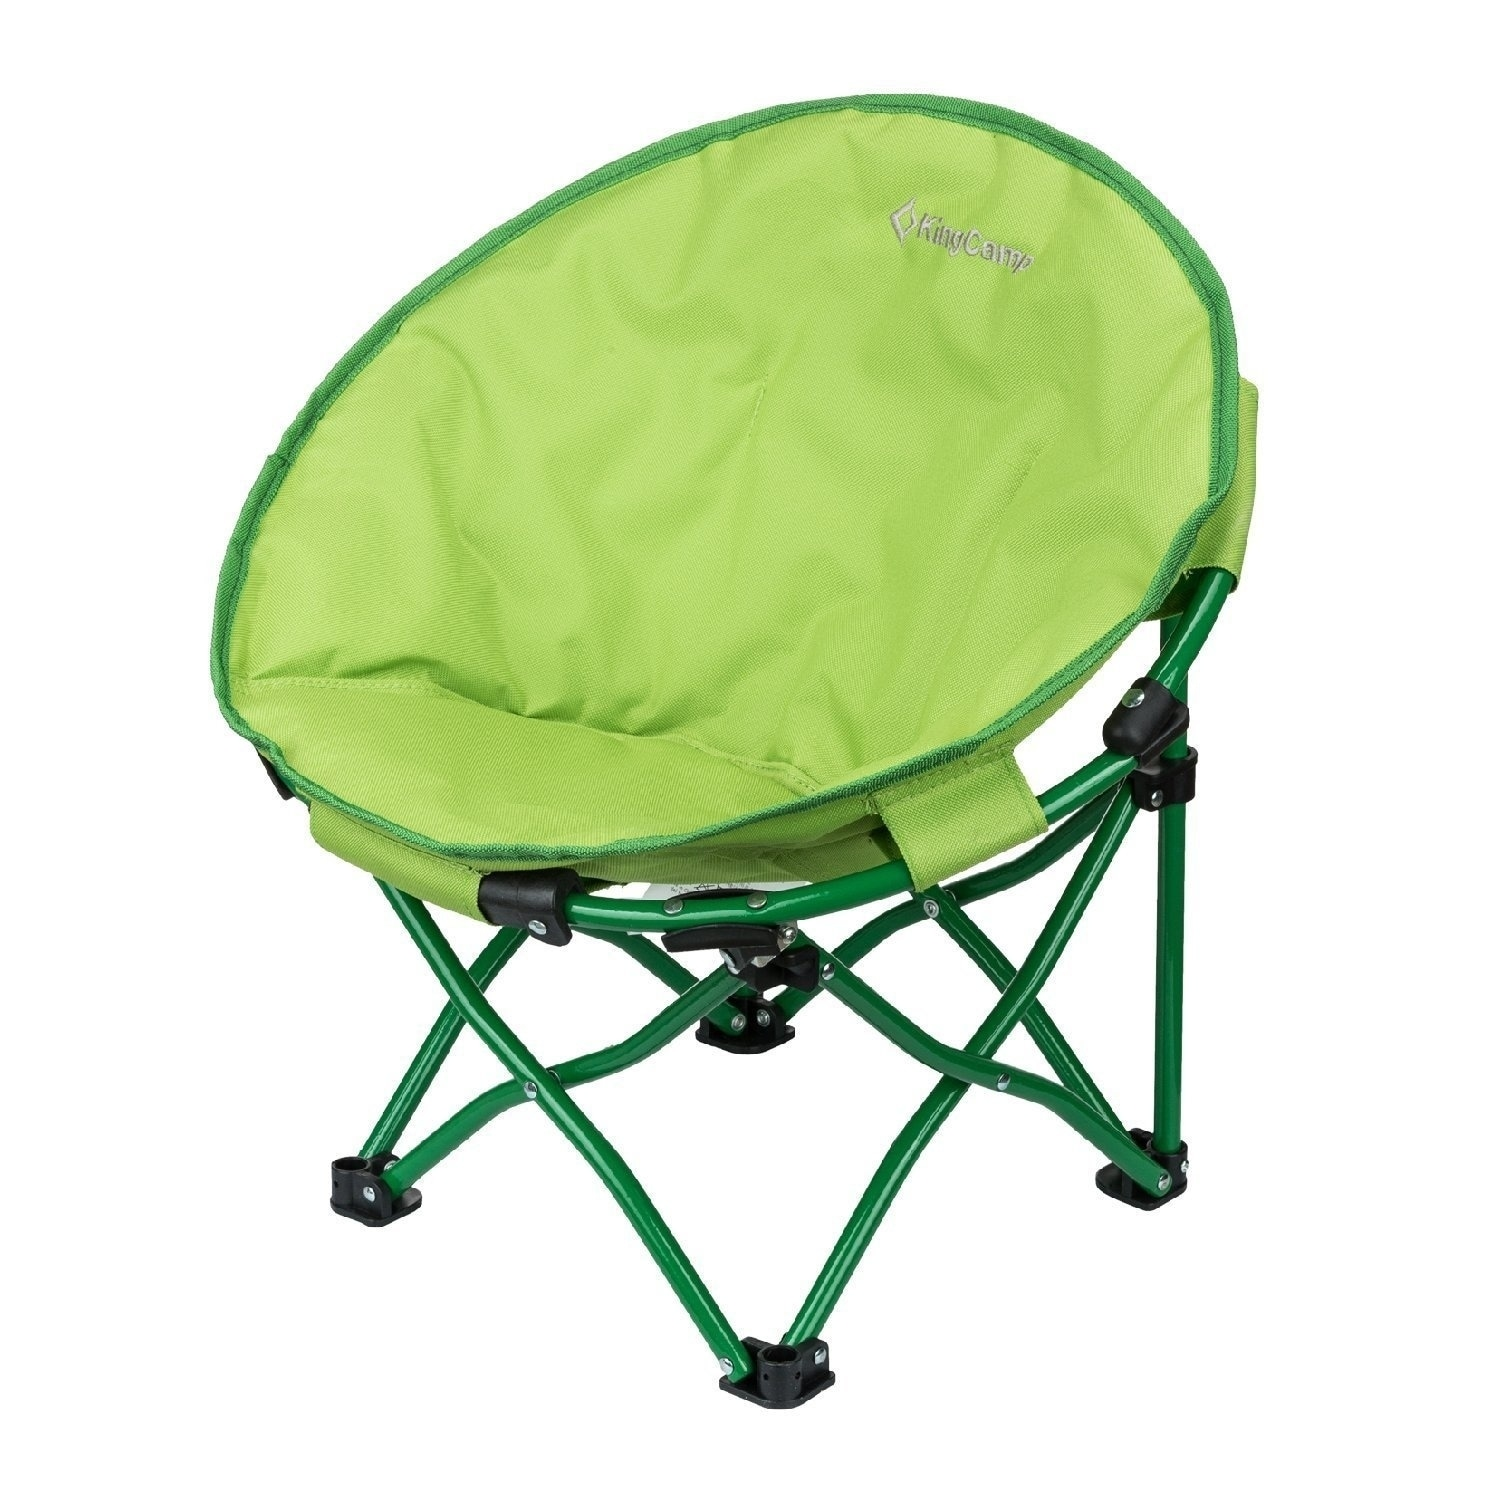 Cute Folding Chairs Kingcamp Cute Saucer Chair Moon Round Mini Size Ultralight Portable Compact Folding